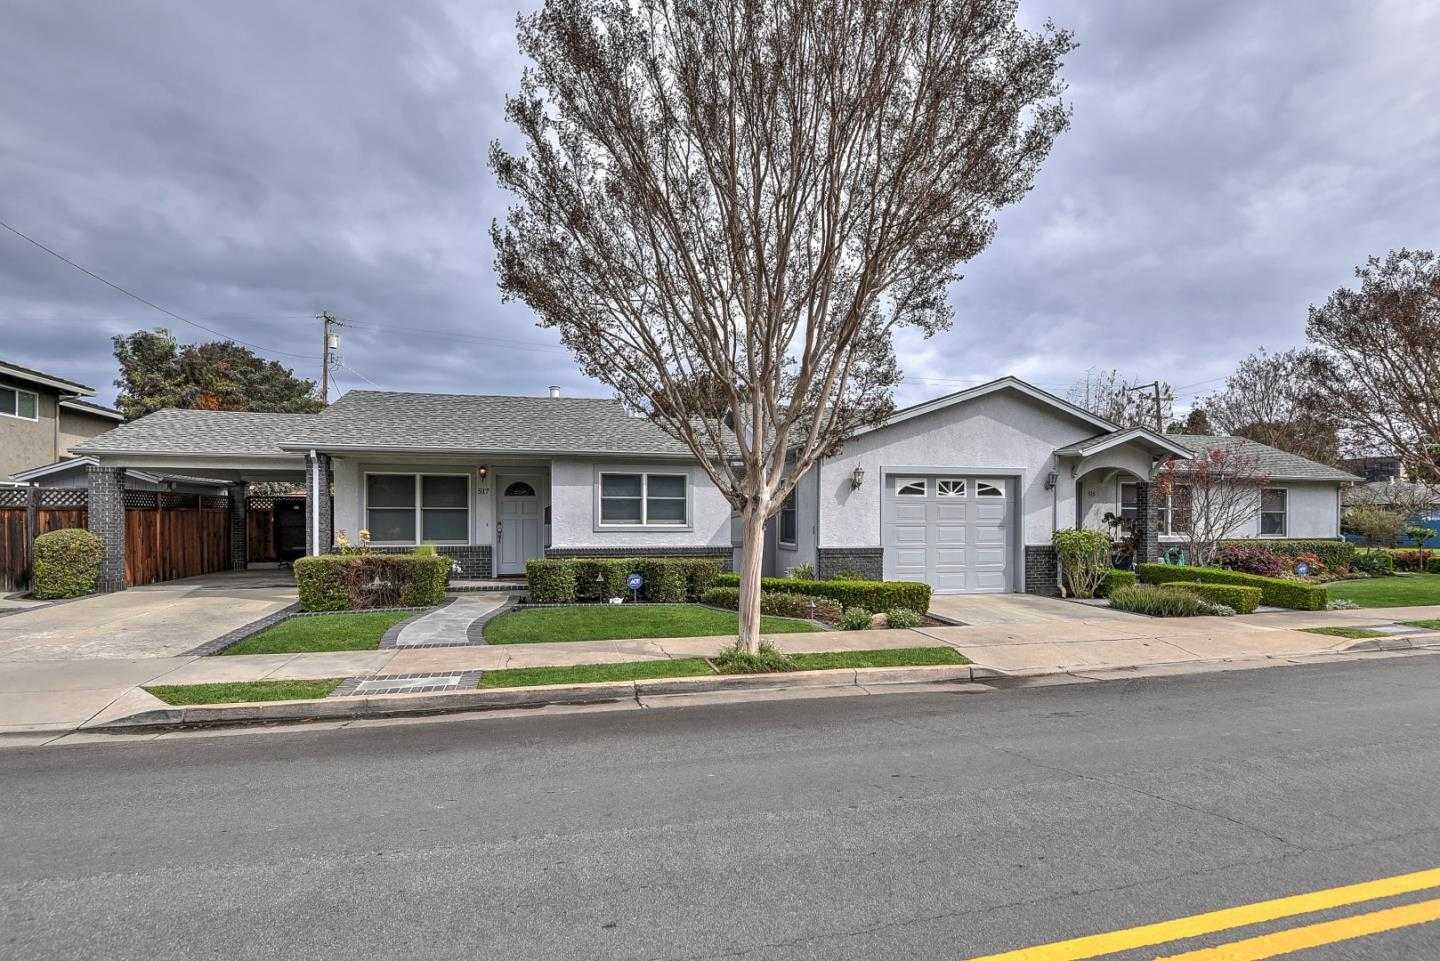 $2,188,888 - 4Br/3Ba -  for Sale in Sunnyvale